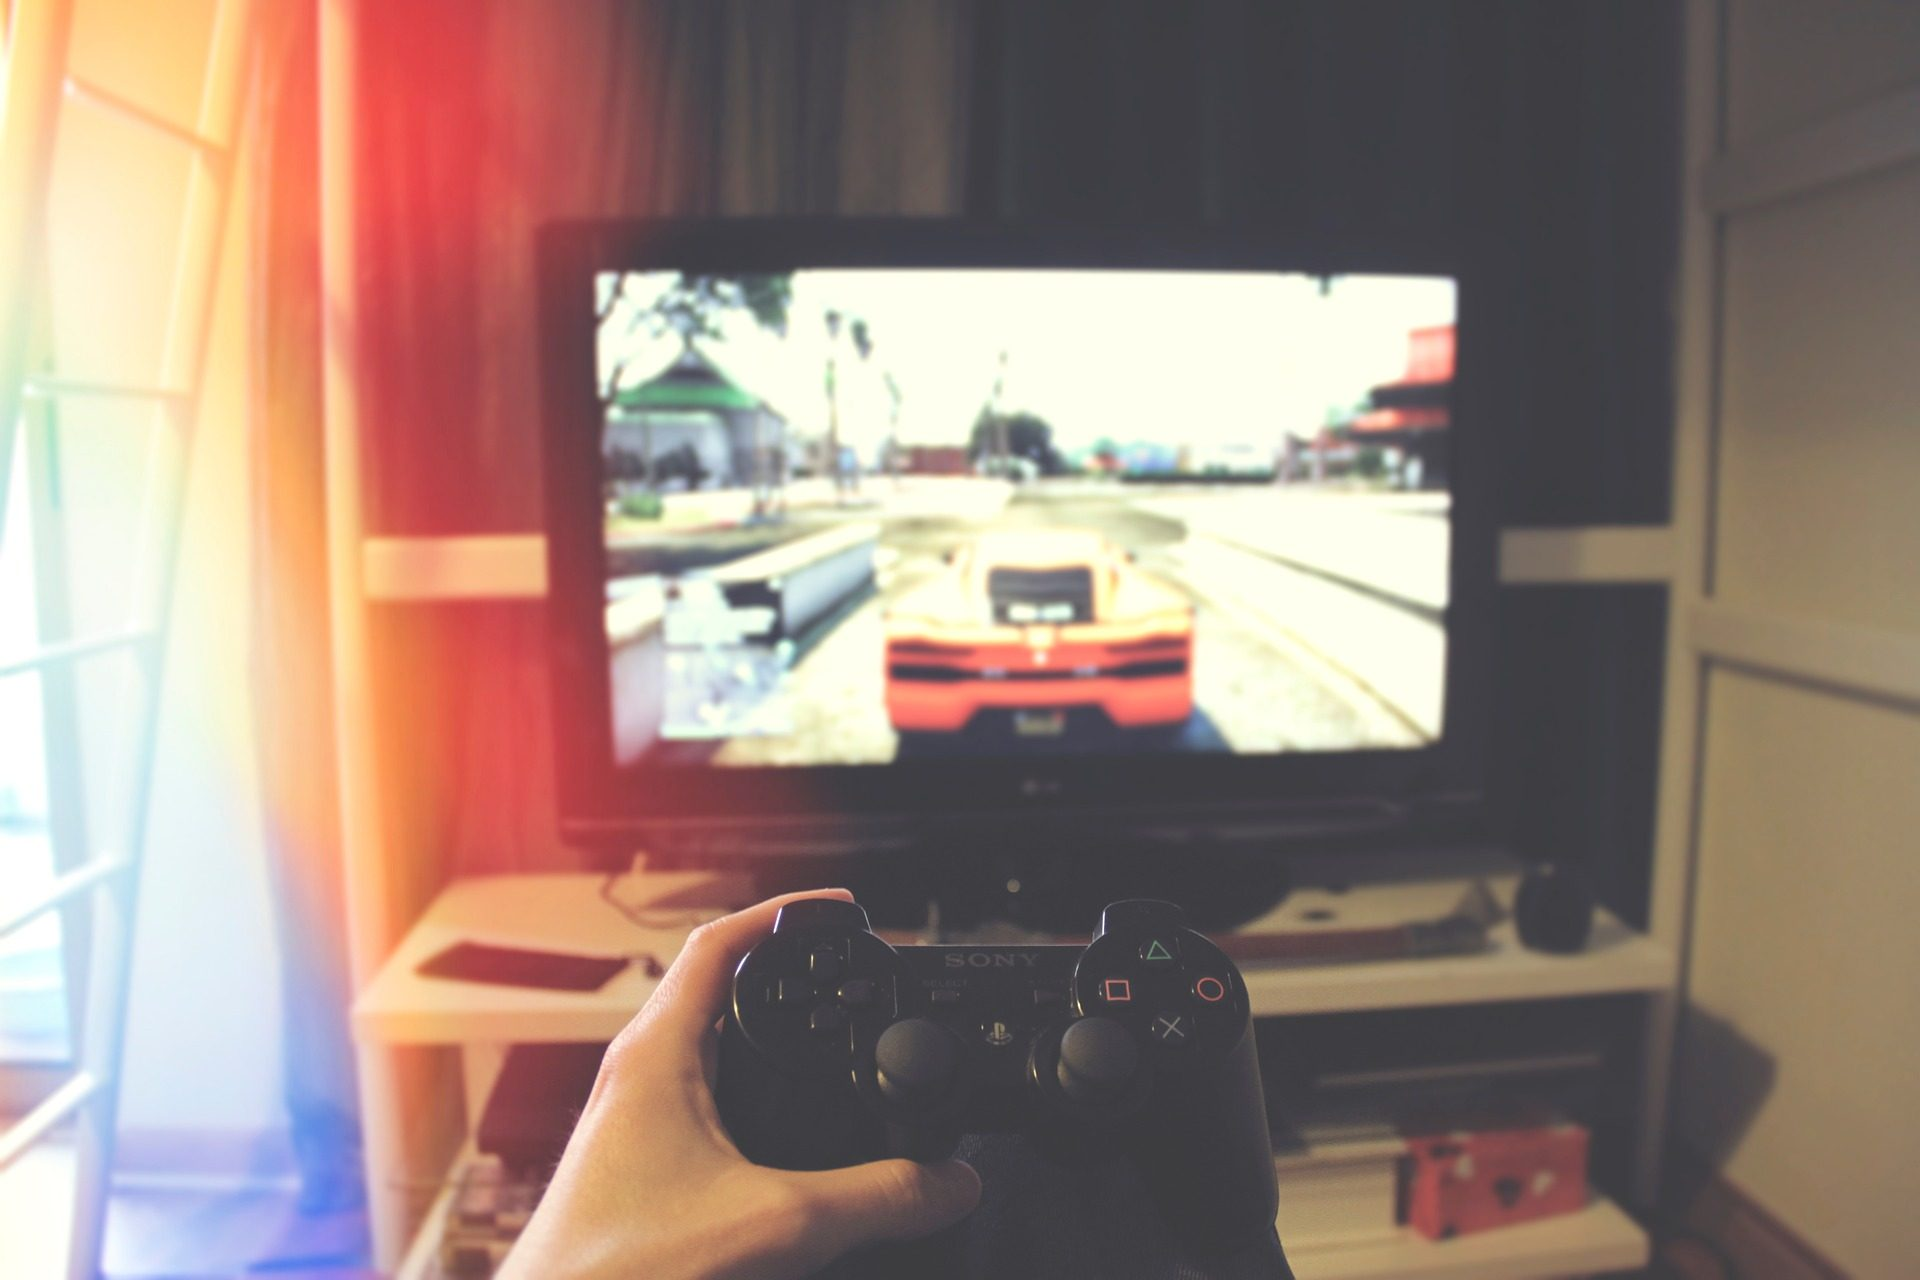 TV, Console, video gioco, controllo remoto, mano, PlayStation - Sfondi HD - Professor-falken.com